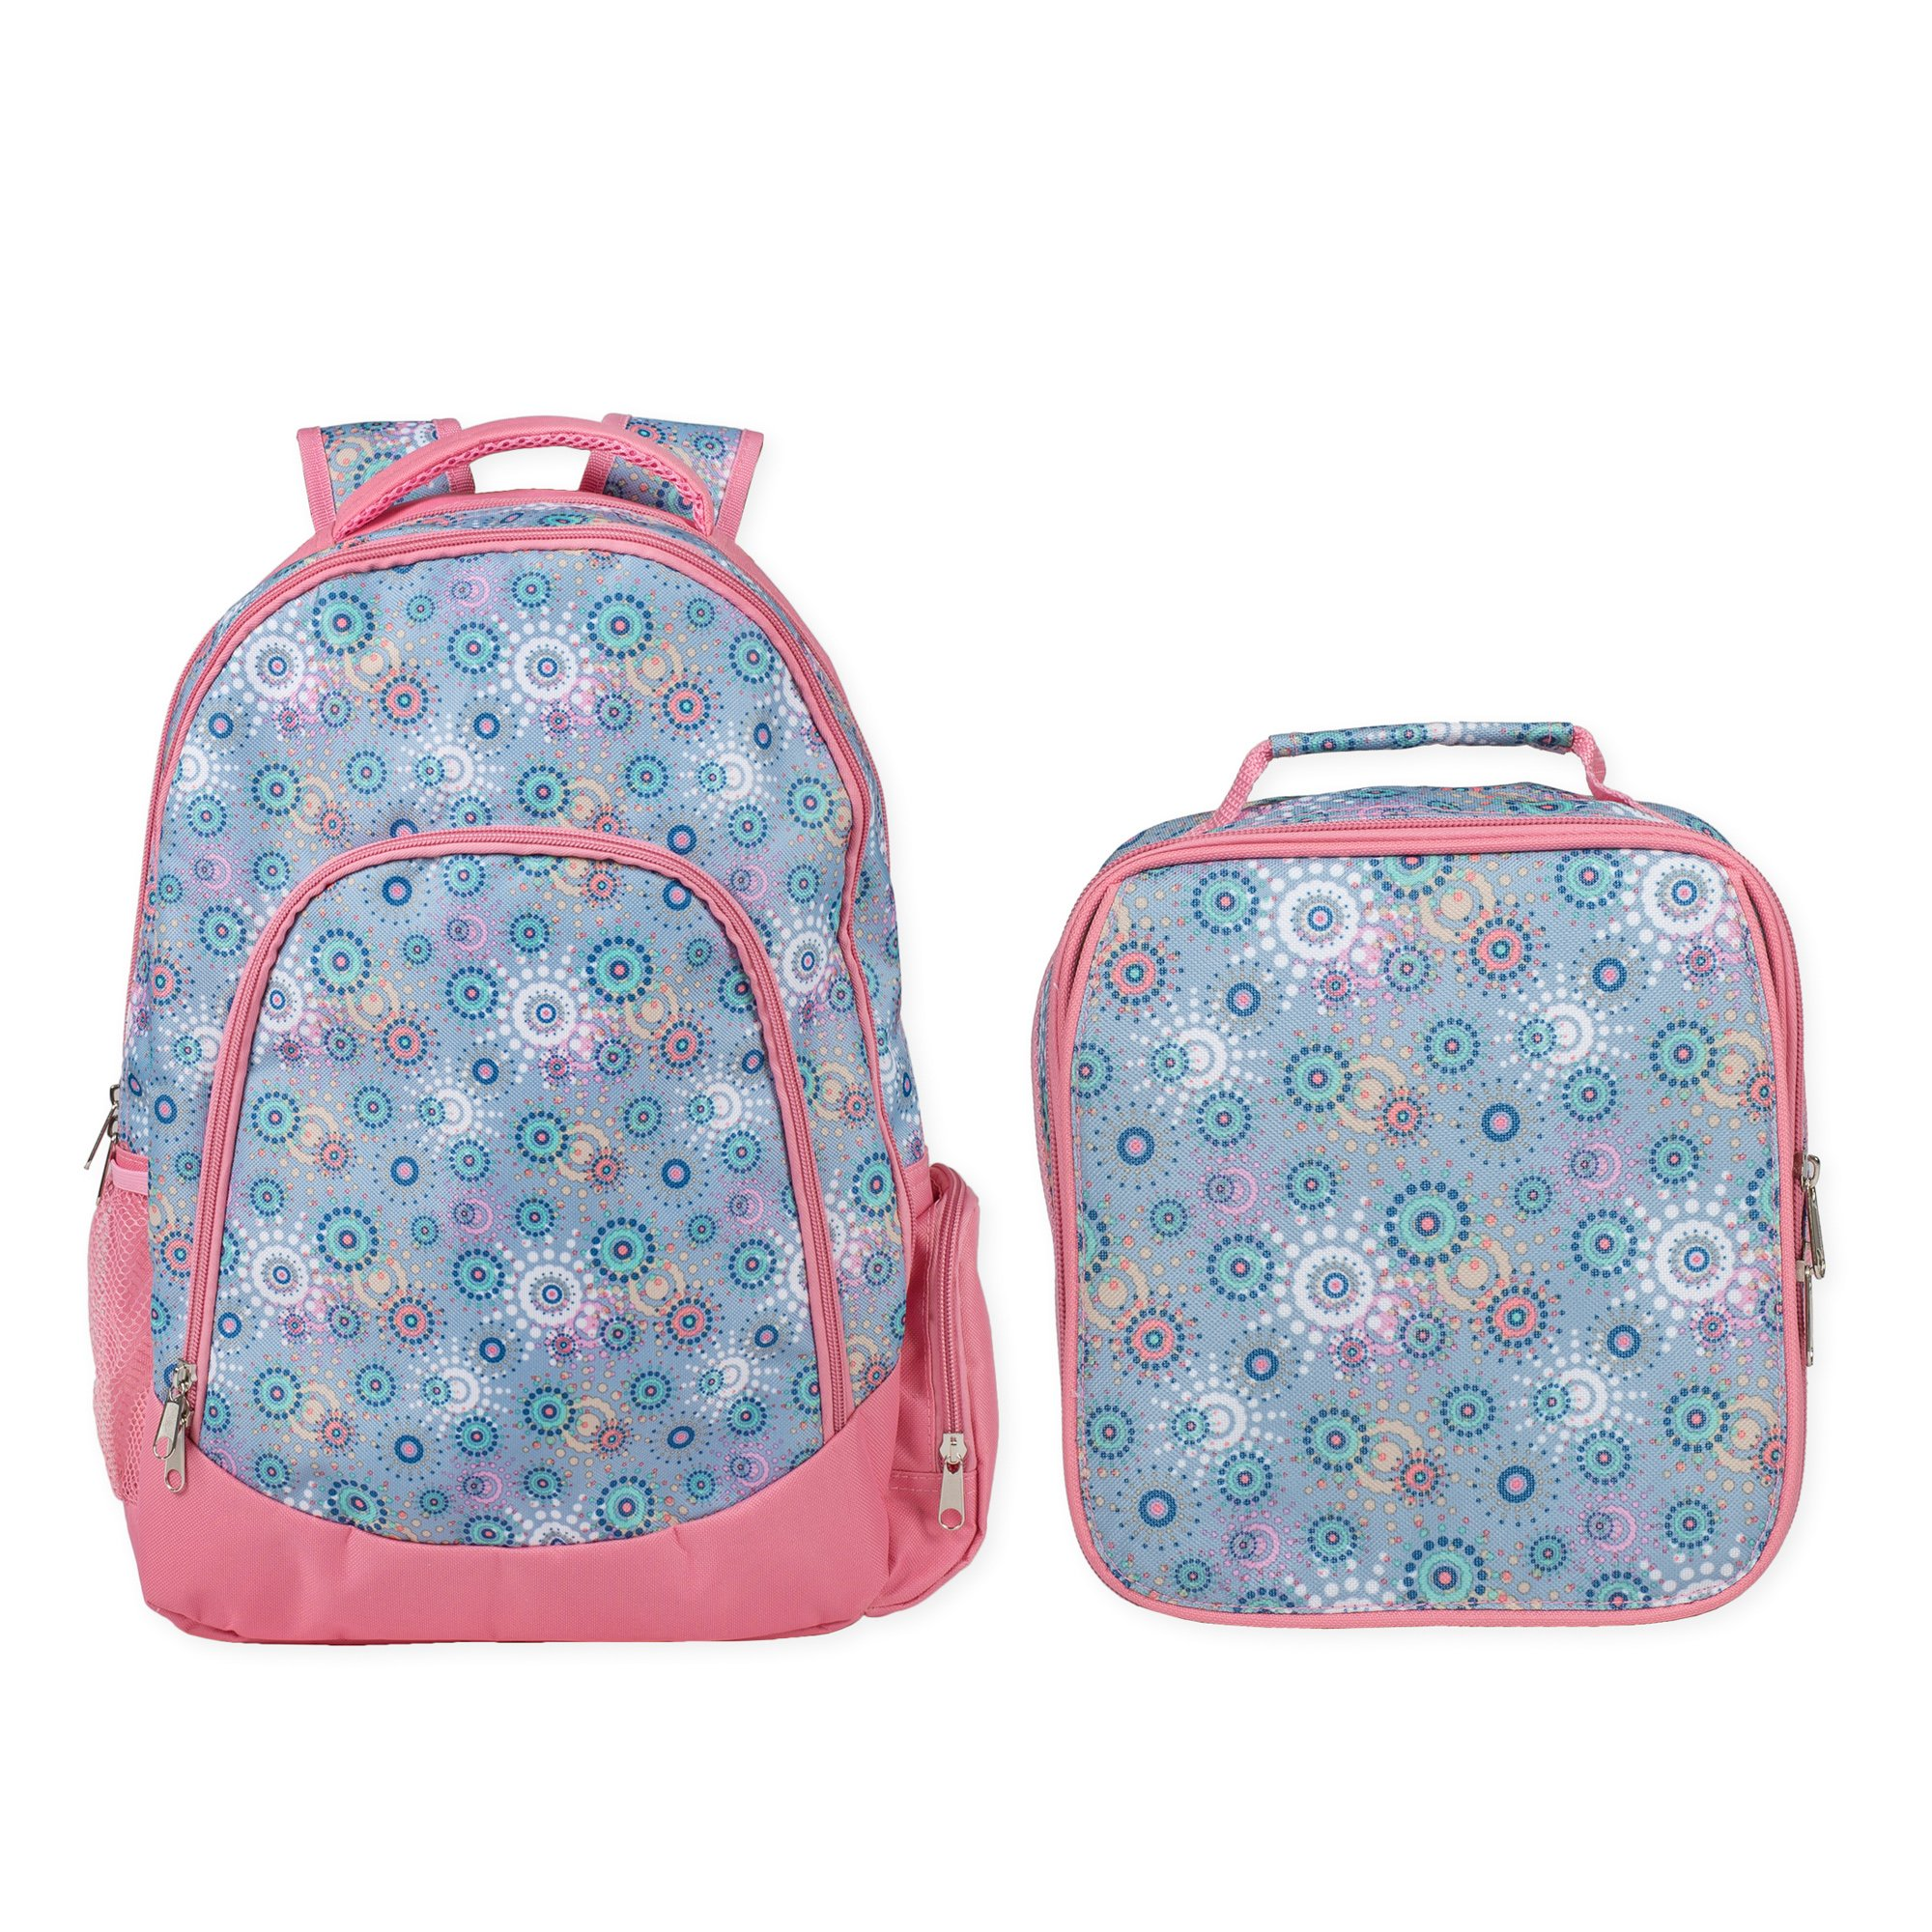 Reinforced Water Resistant School Backpack and Insulated Lunch Bag Set (1, Periwinkle Circle Dot)